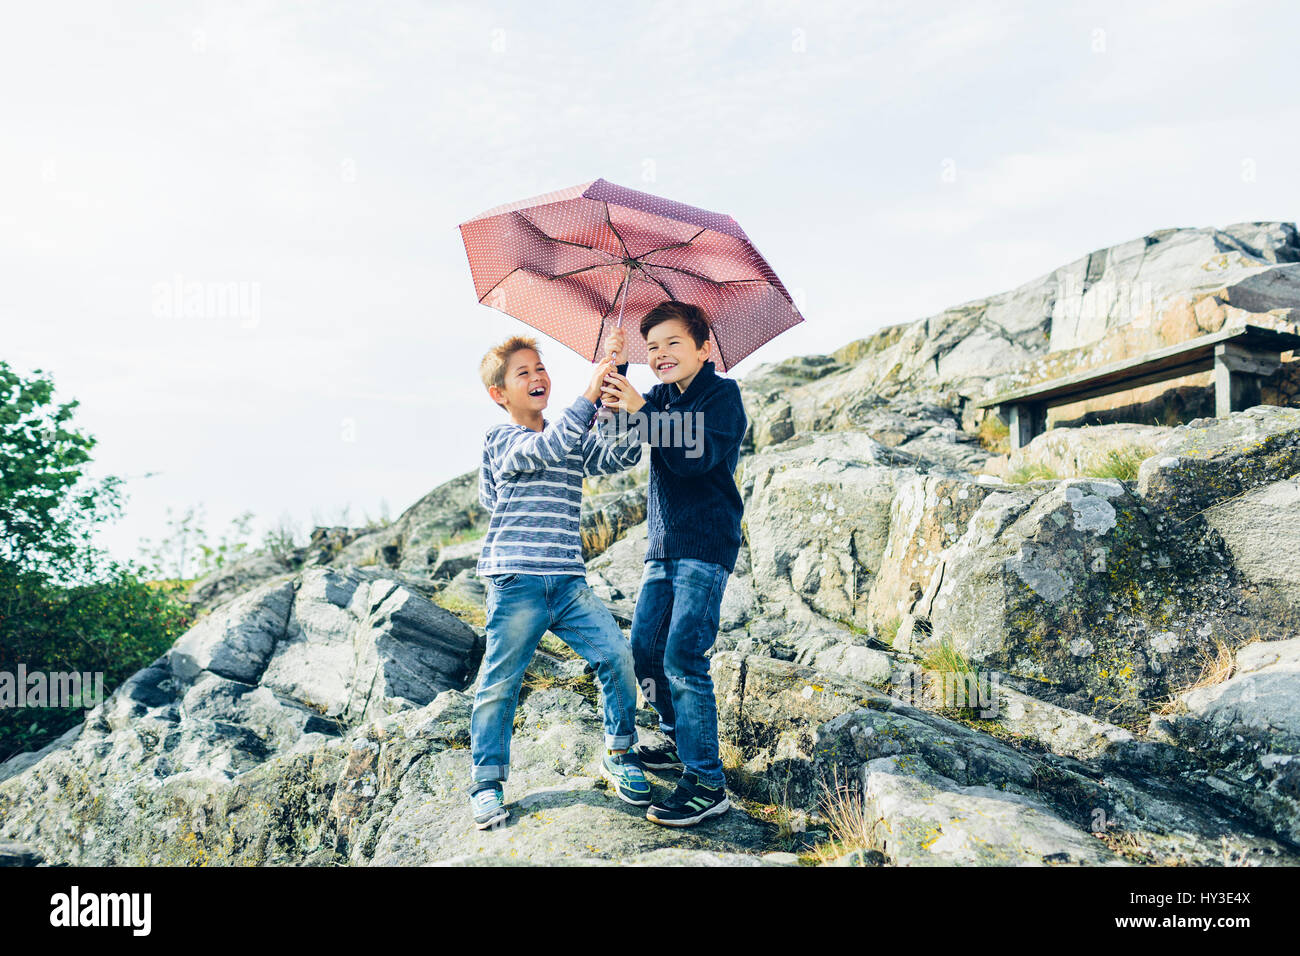 Sweden, Blekinge, Karlskrona, Laughing boys (8-9) with umbrella on rocky hill - Stock Image